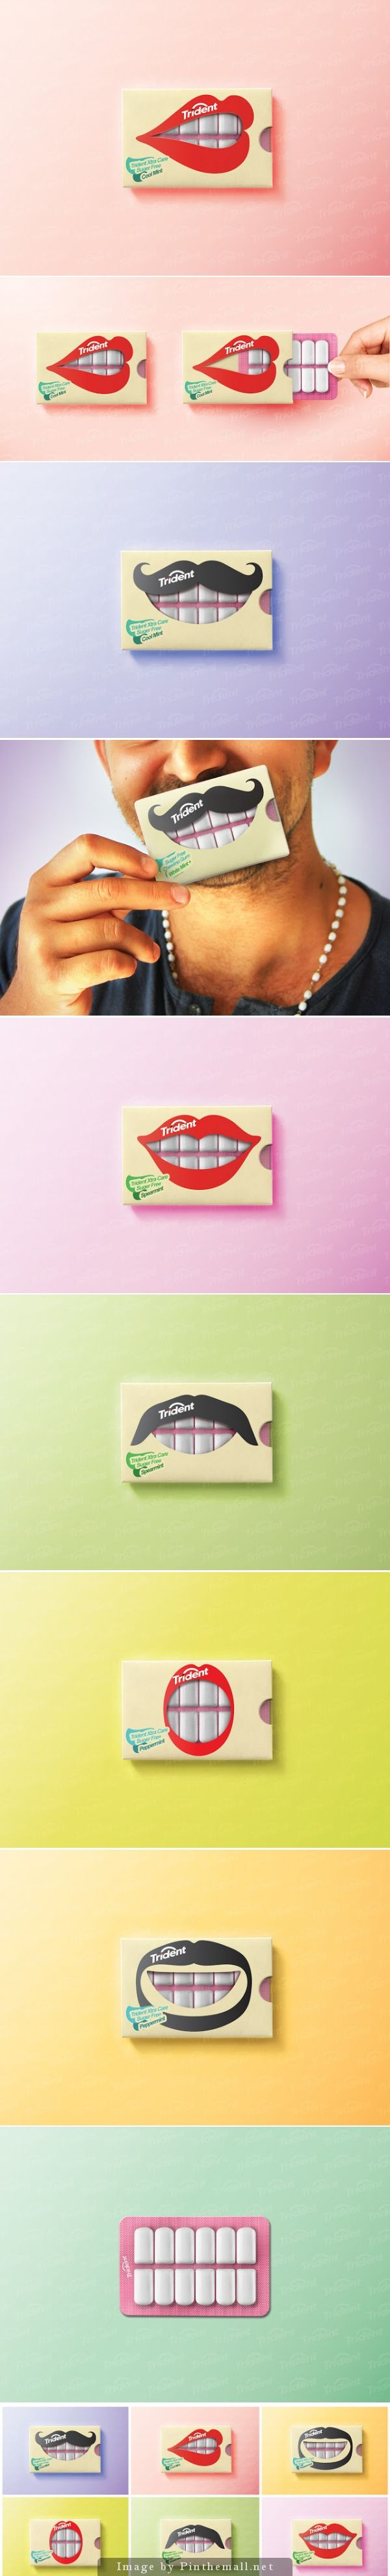 Trident Gum (Concept) is so great and so popular however it does remind us of HappyDent another very popular pin PD